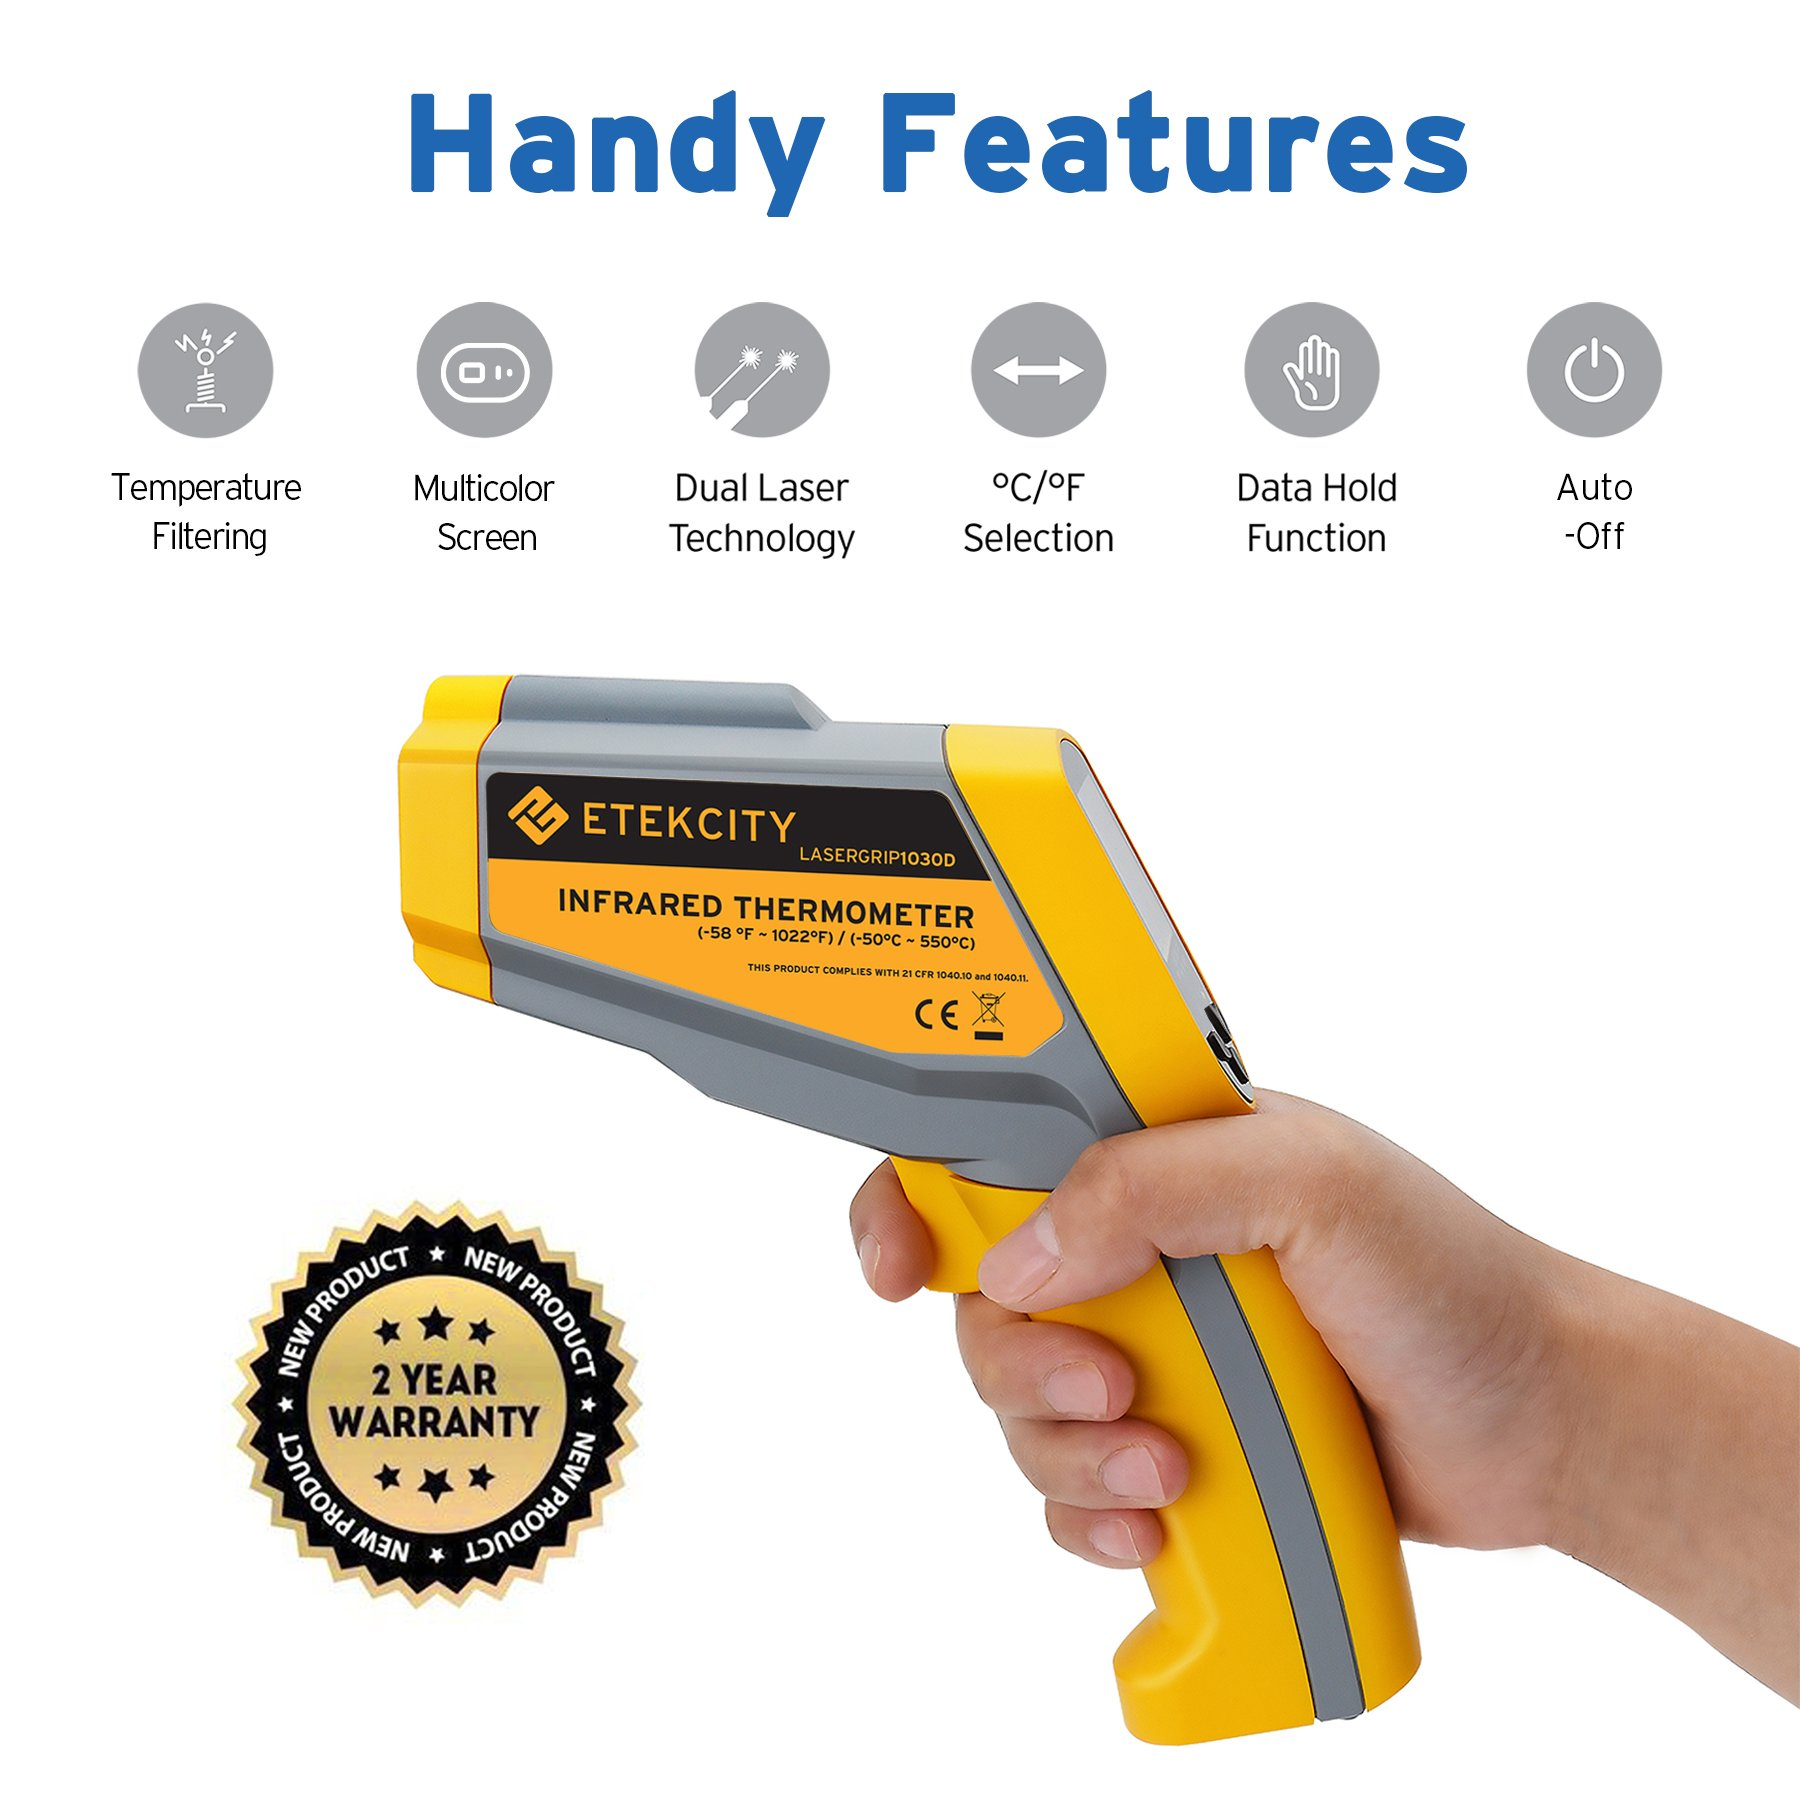 Etekcity Lasergrip 1025D Digital Dual Laser Infrared Thermometer Temperature Gun Non-contact -58℉~1022℉ (-50℃ ~ 550℃) with Voltage Detecting, Adjustable Emissivity by Etekcity (Image #7)